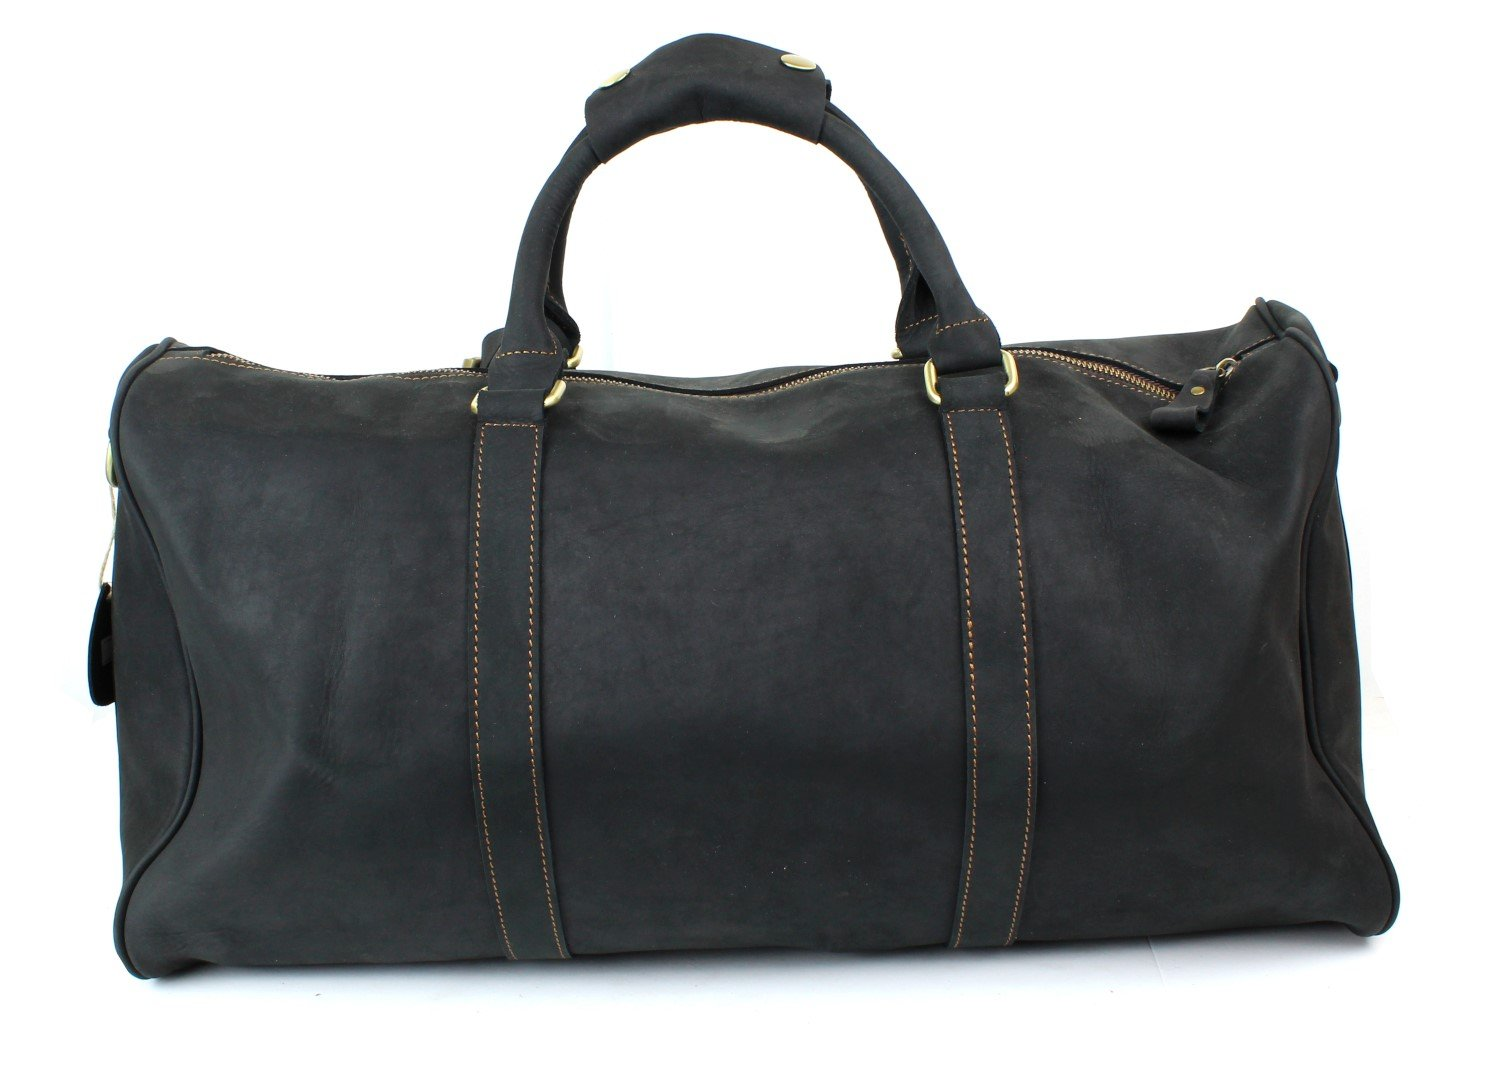 Genuine Leather Duffel Weekender Bag with Shoulder Strap - Black